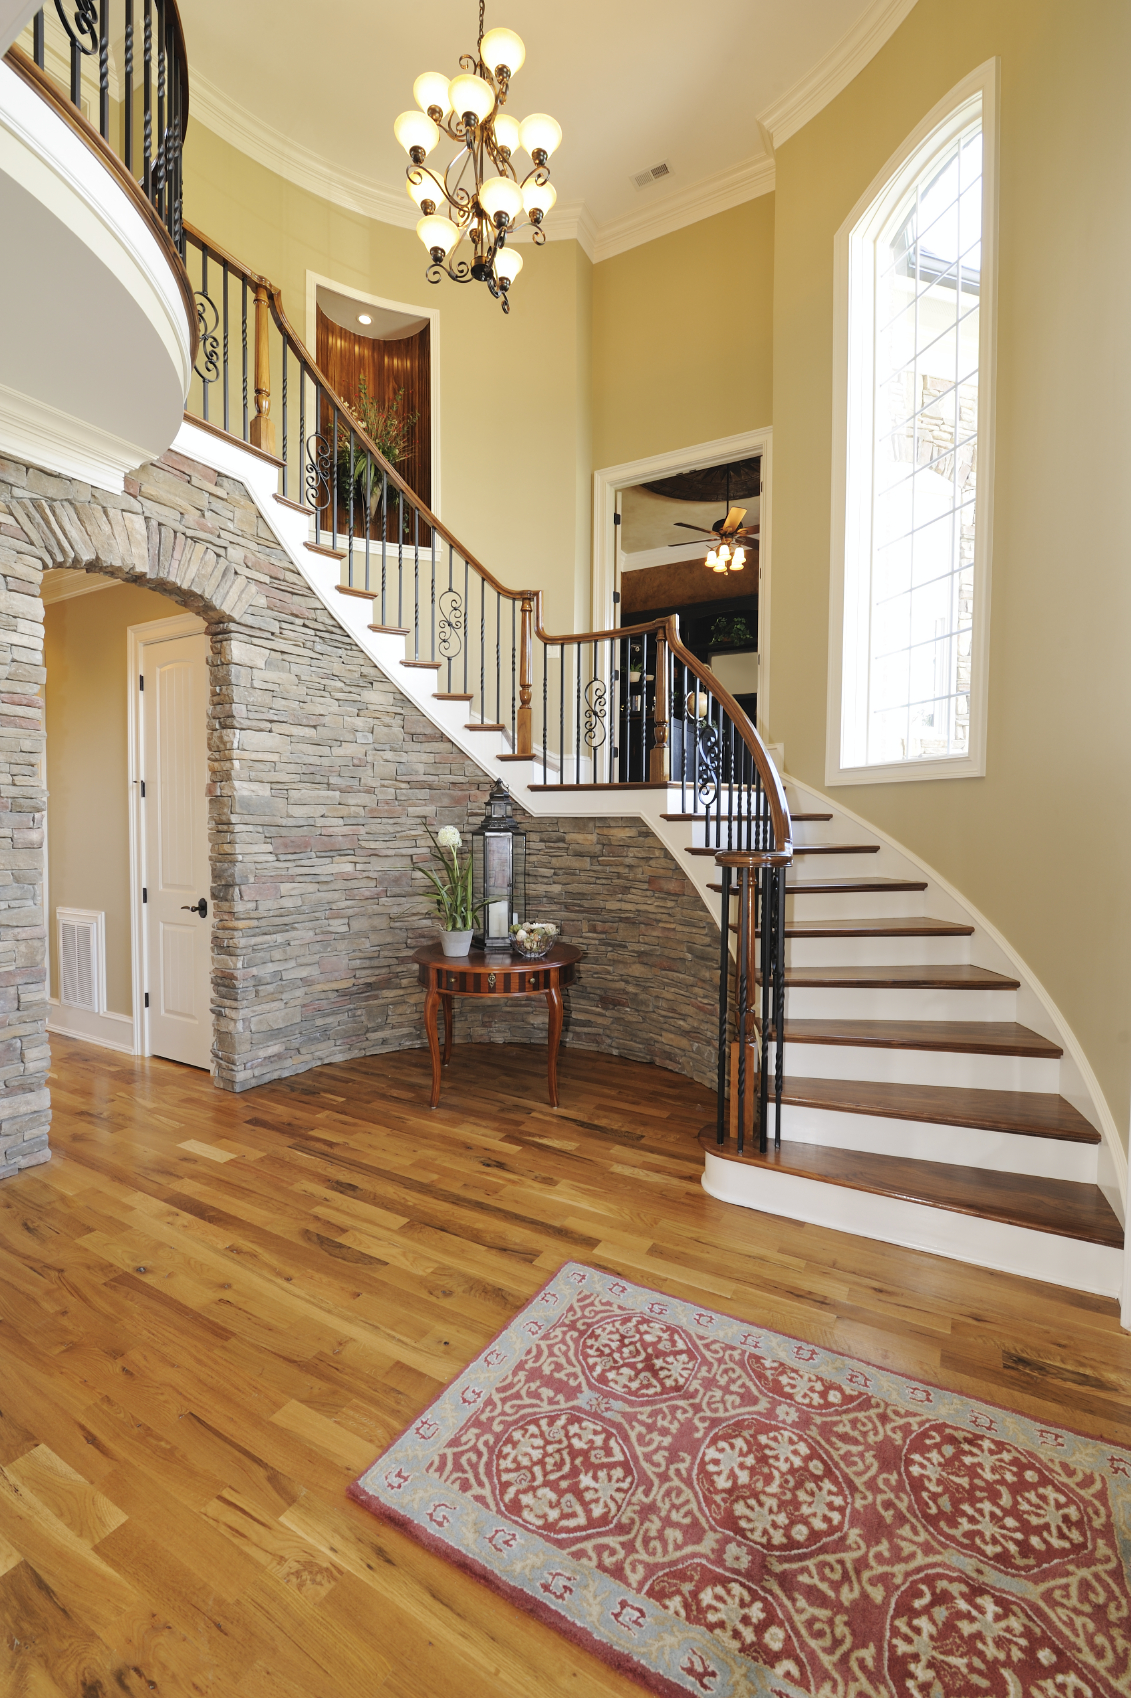 46-beautiful-entrance-hall-designs-and-ideas-pictures-the-spiral-staircase-sweeps-down-over-a-faux-stone-wall-archway-into-rest_decorating-hallway-ideas_ideas_graphic-design-ideas-small-backyard-jewel